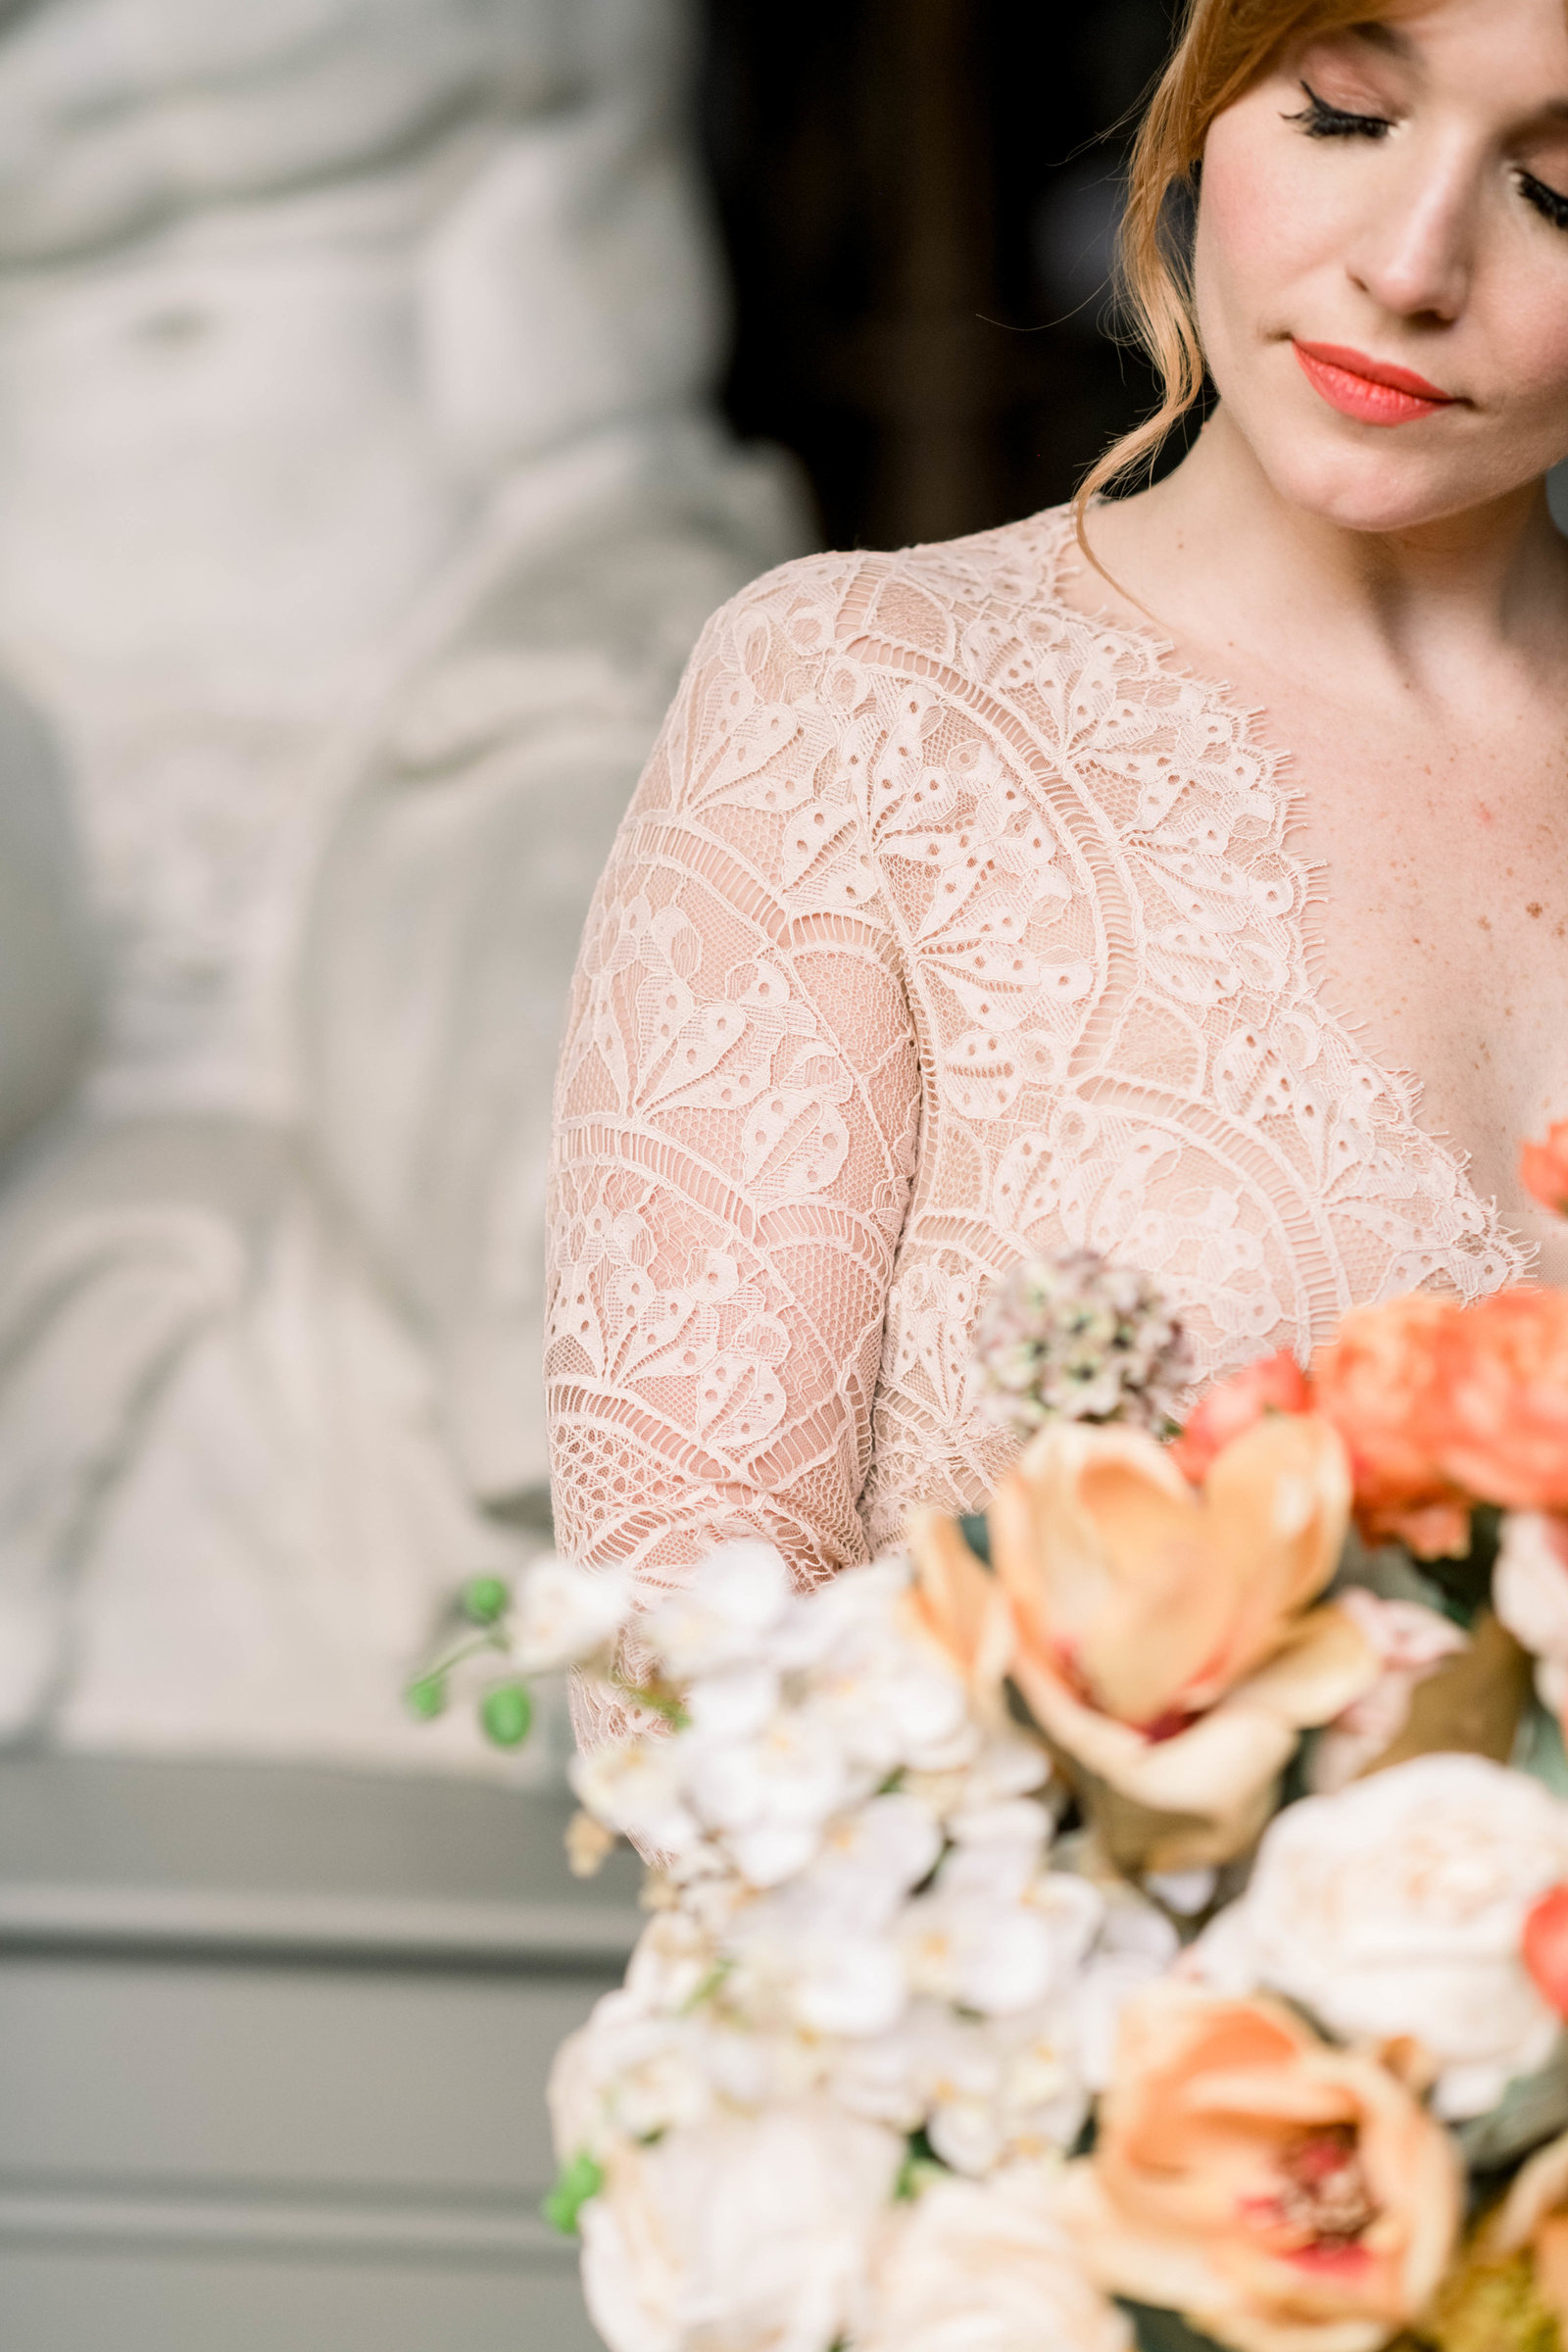 Fine art museum wedding with Kelly Faetanini gown at the Pennsylvania Academy of the Fine Arts by Liz Andolina Photography